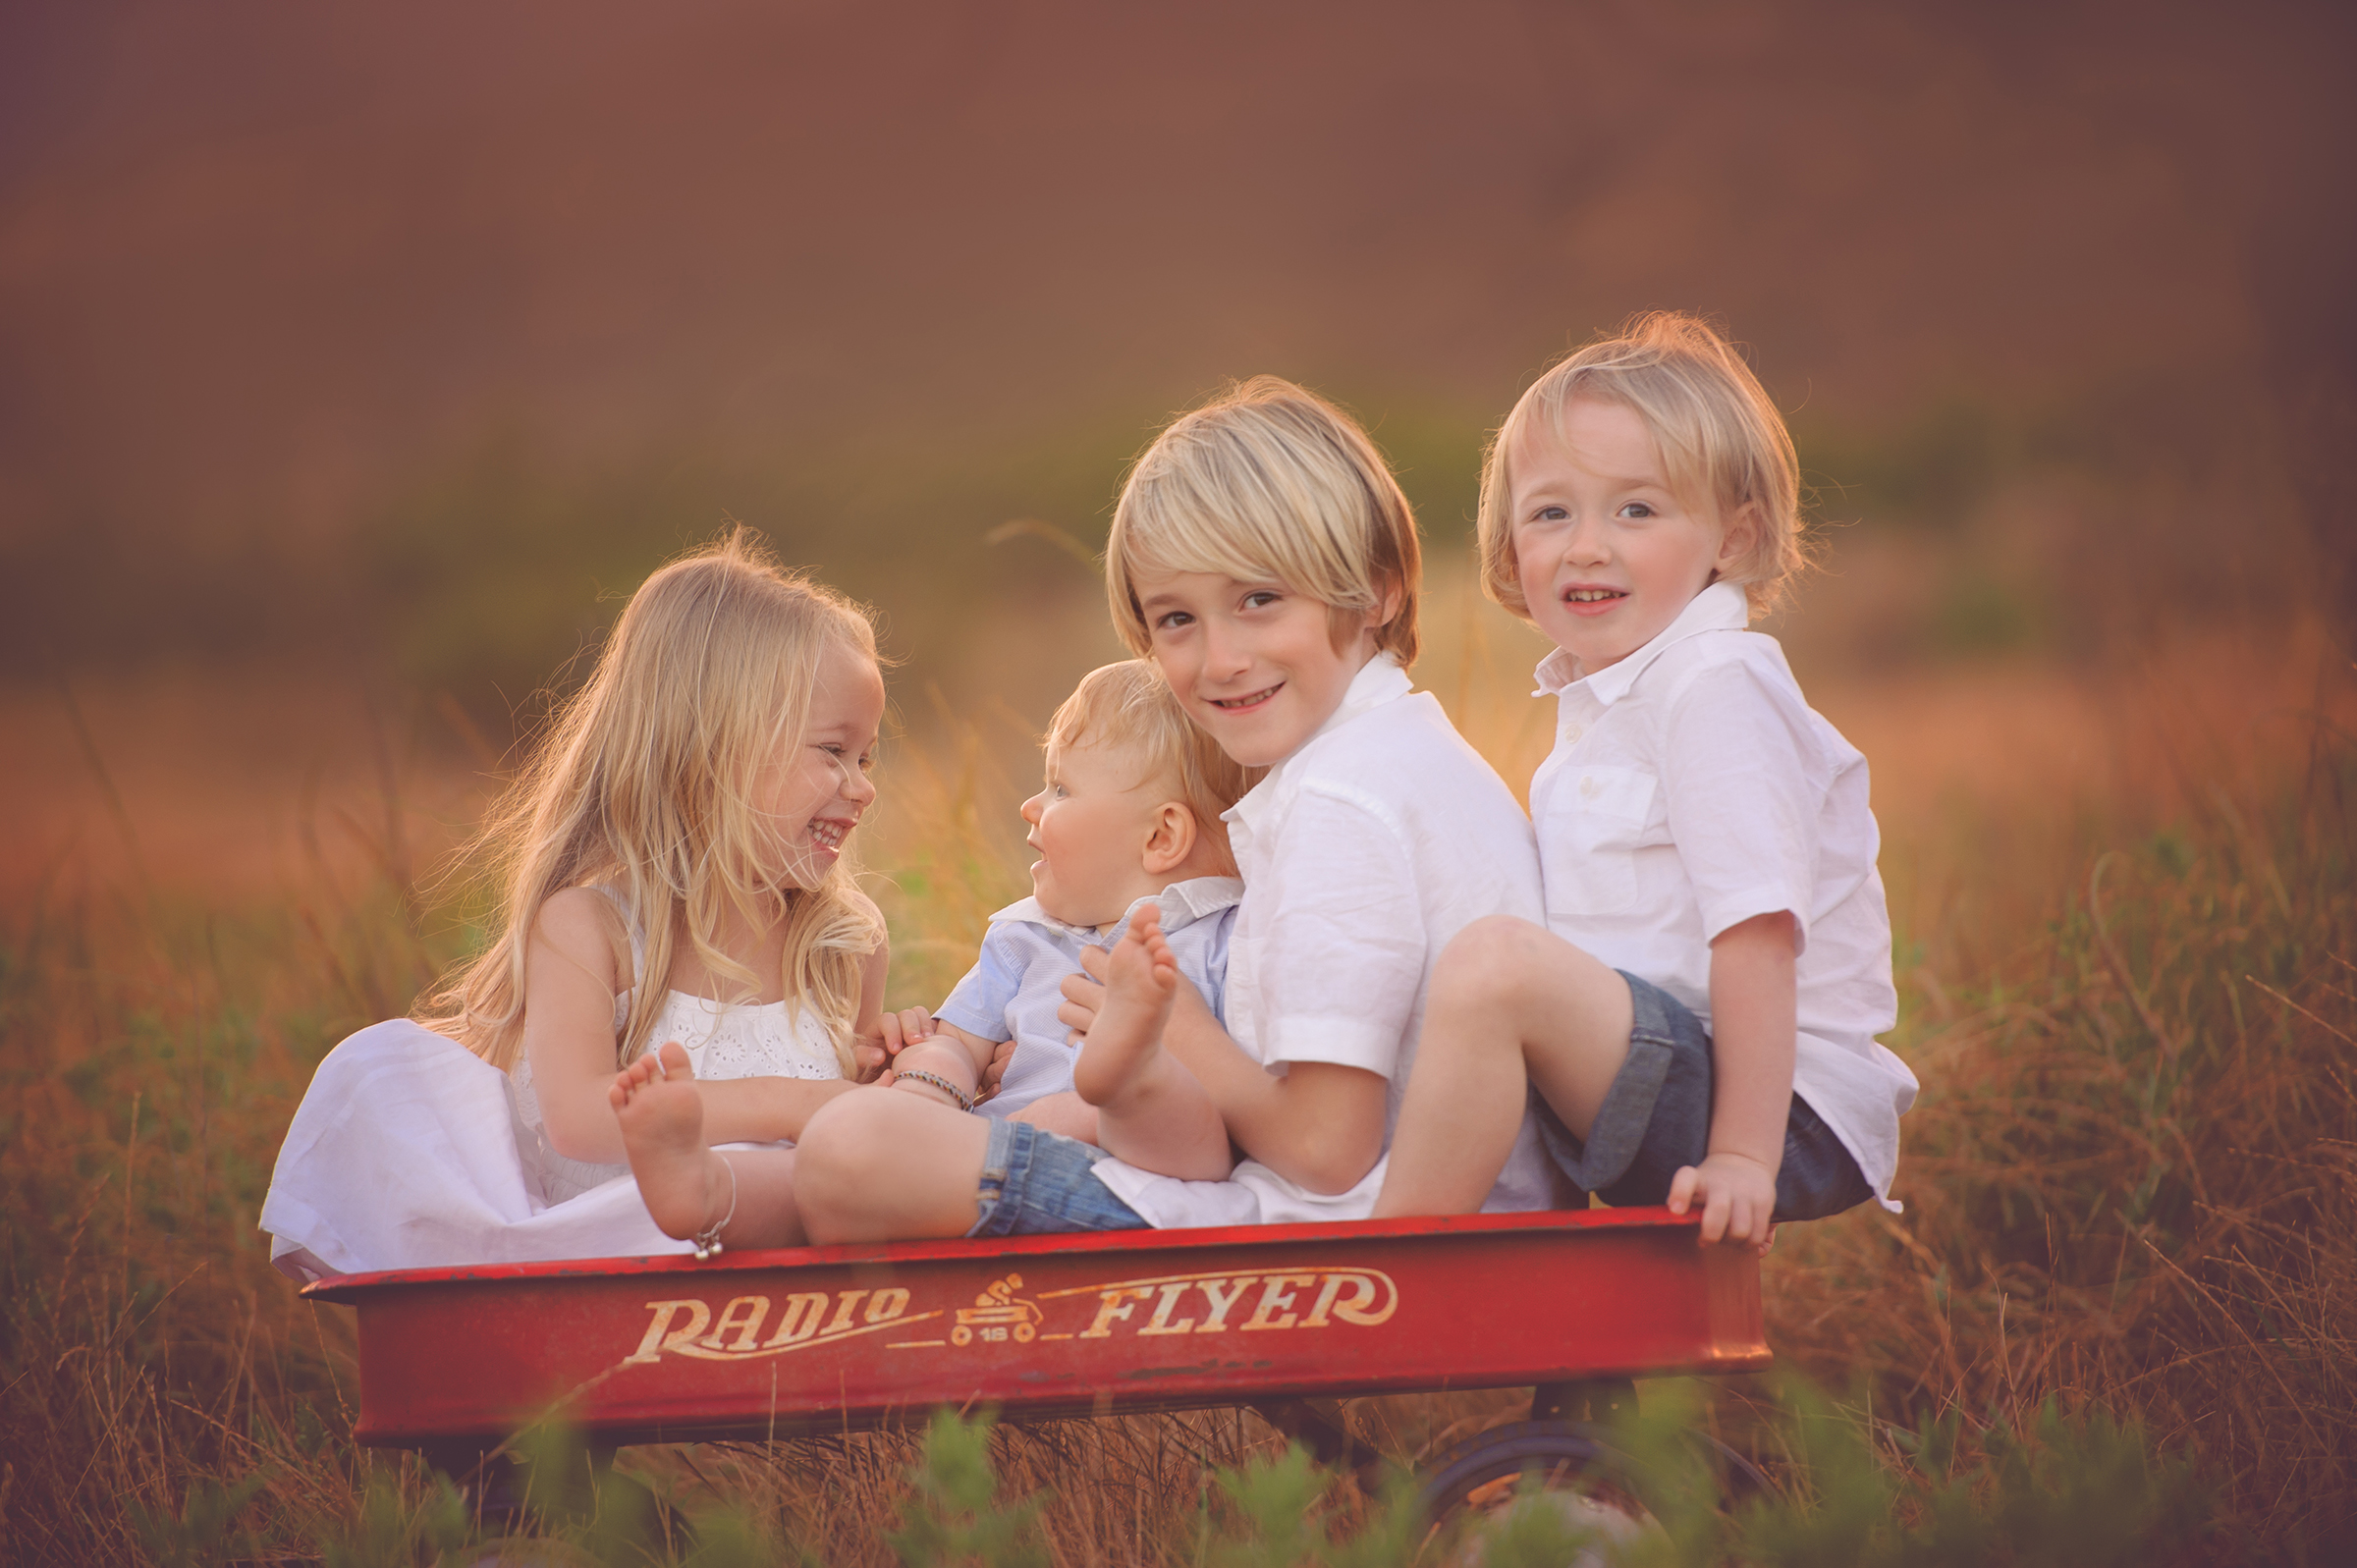 Siblings sit in a field in a red radio flyer wagon with baby brother in San Diego, CA